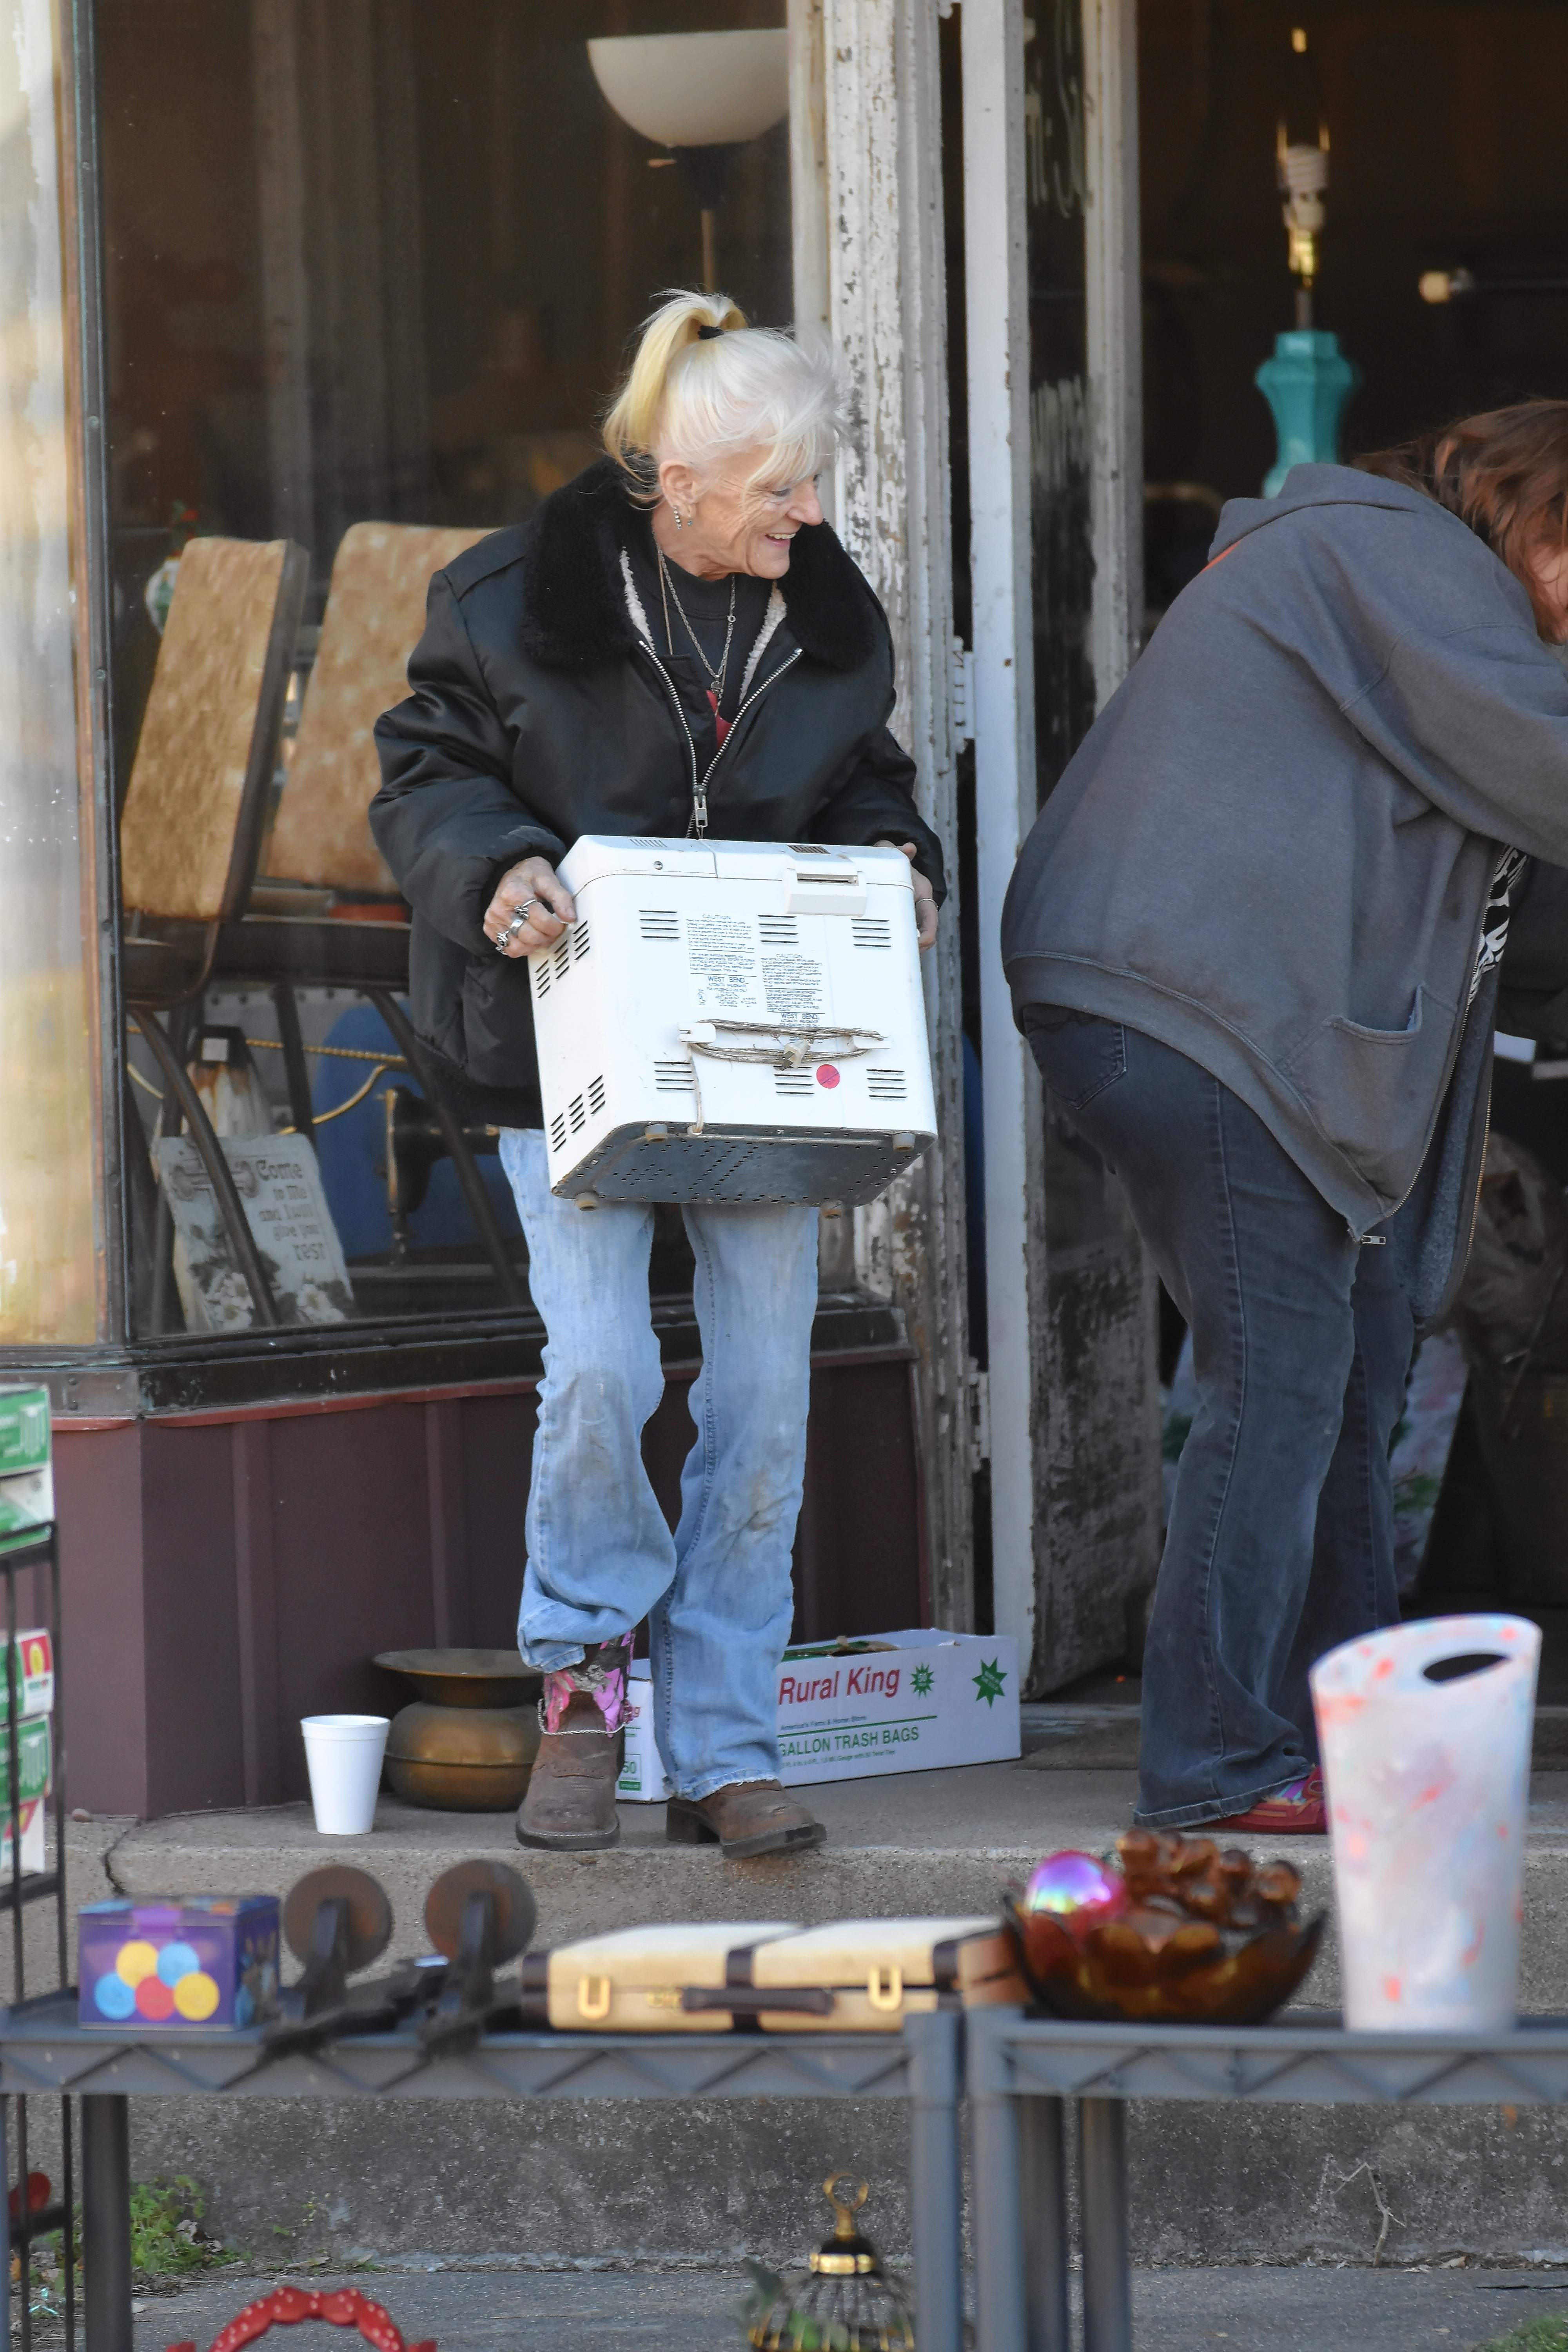 Sandy Gwaltney of Eldorado moves a box as she sets up for the reopening of her business, Cassandra's Forget Me Not ... Again. Gwaltney's old store burned on Oct. 29.